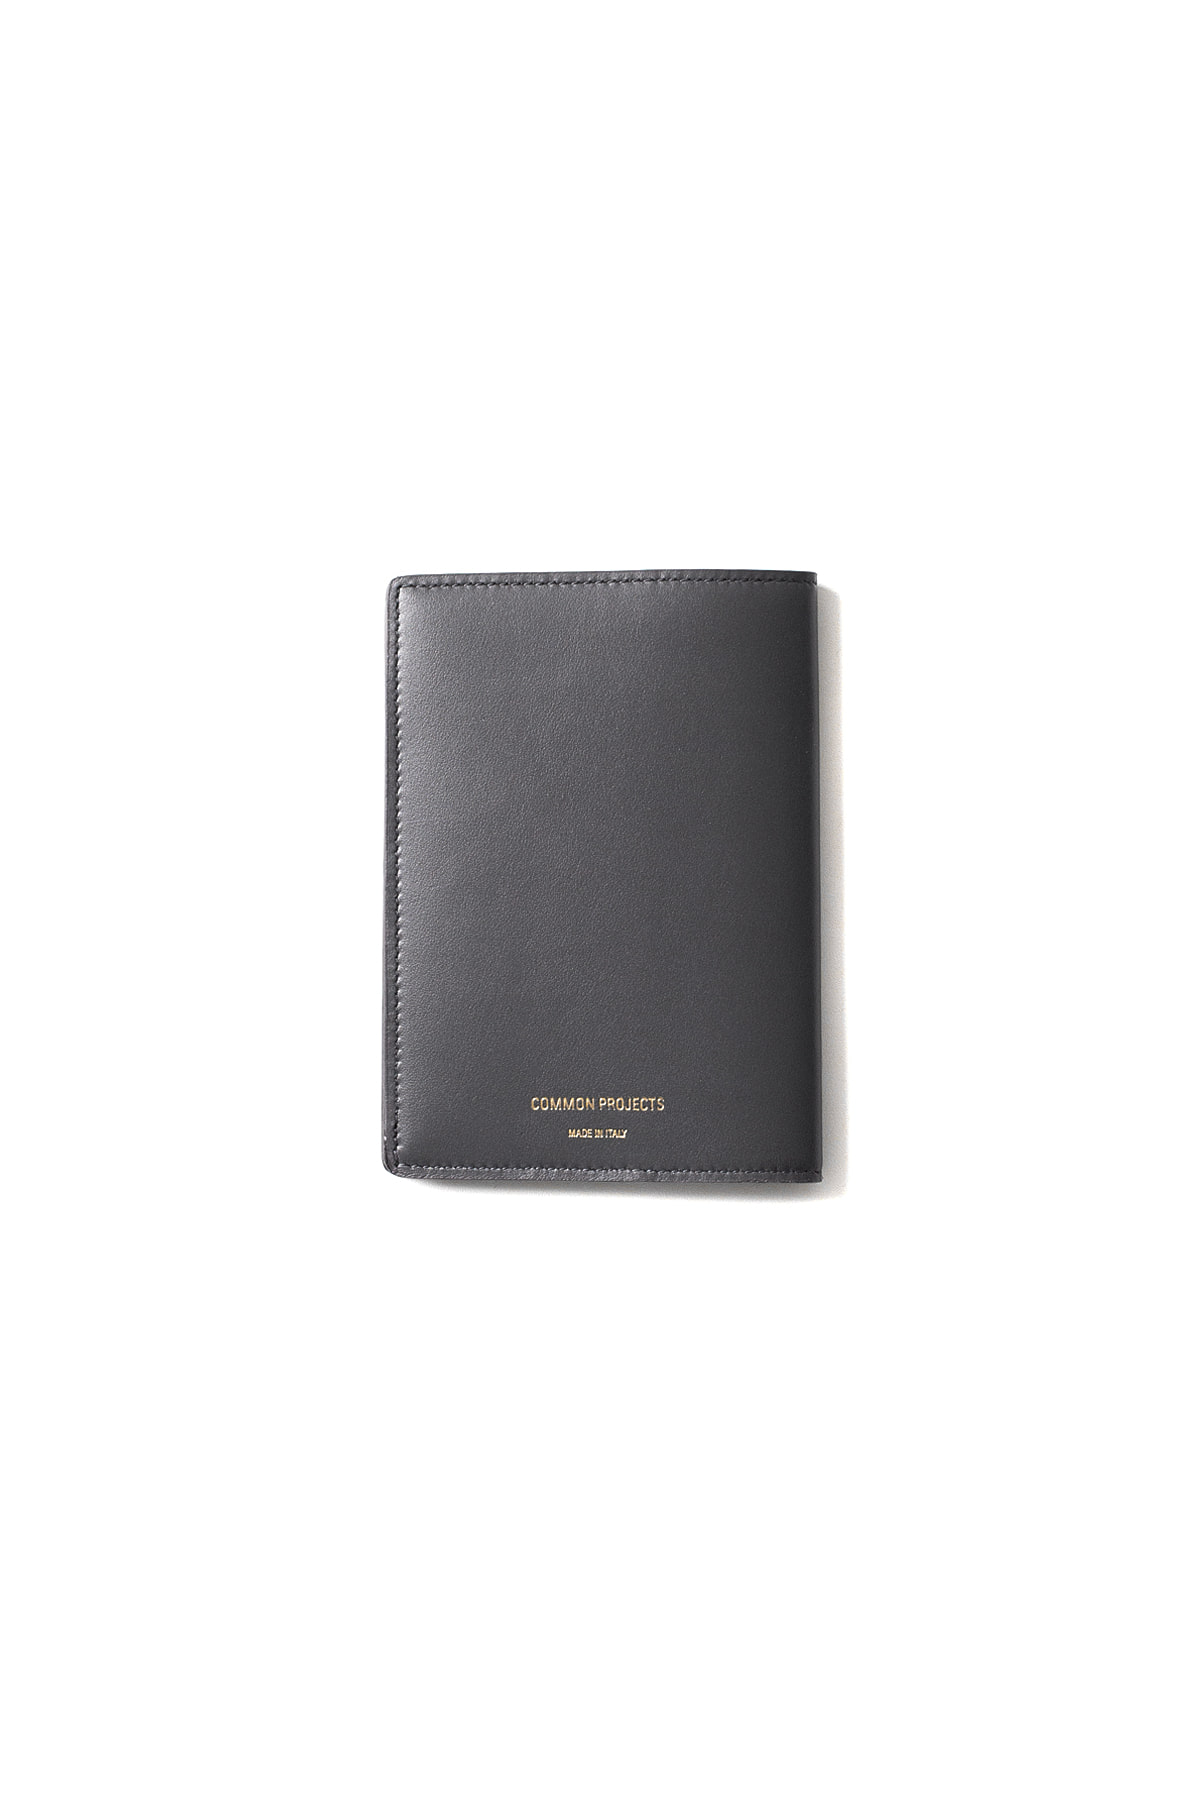 Common Projects : Passport Folio In Softy Leather (Blue Grey)